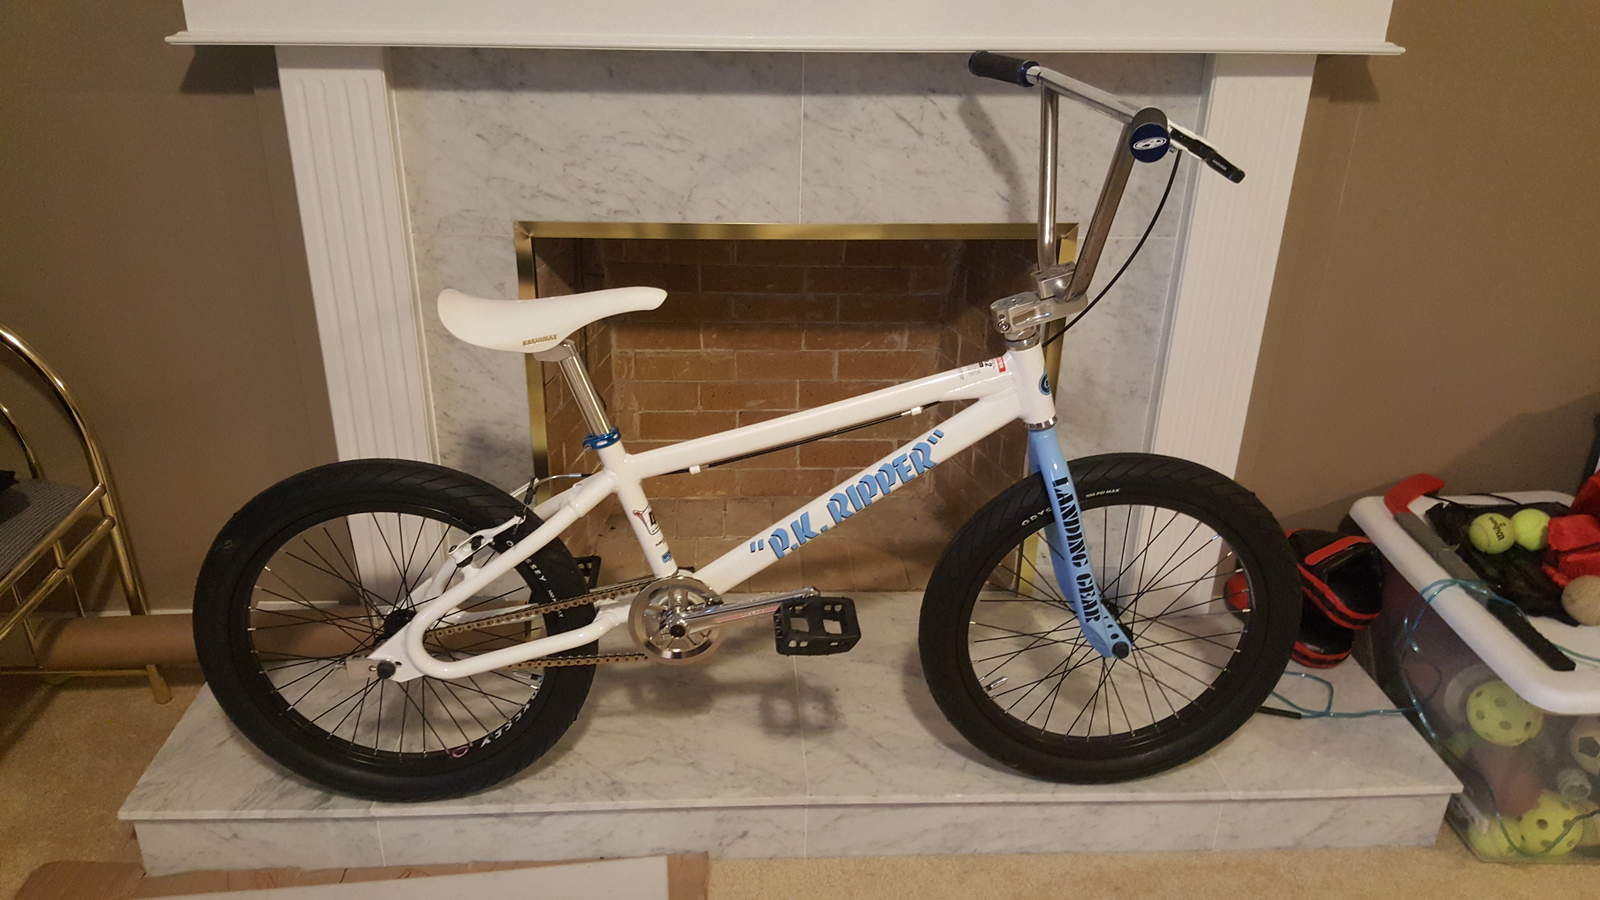 http://uploads.bmxmuseum.com/user-images/246723/20190209_0917235c609407bb.jpg